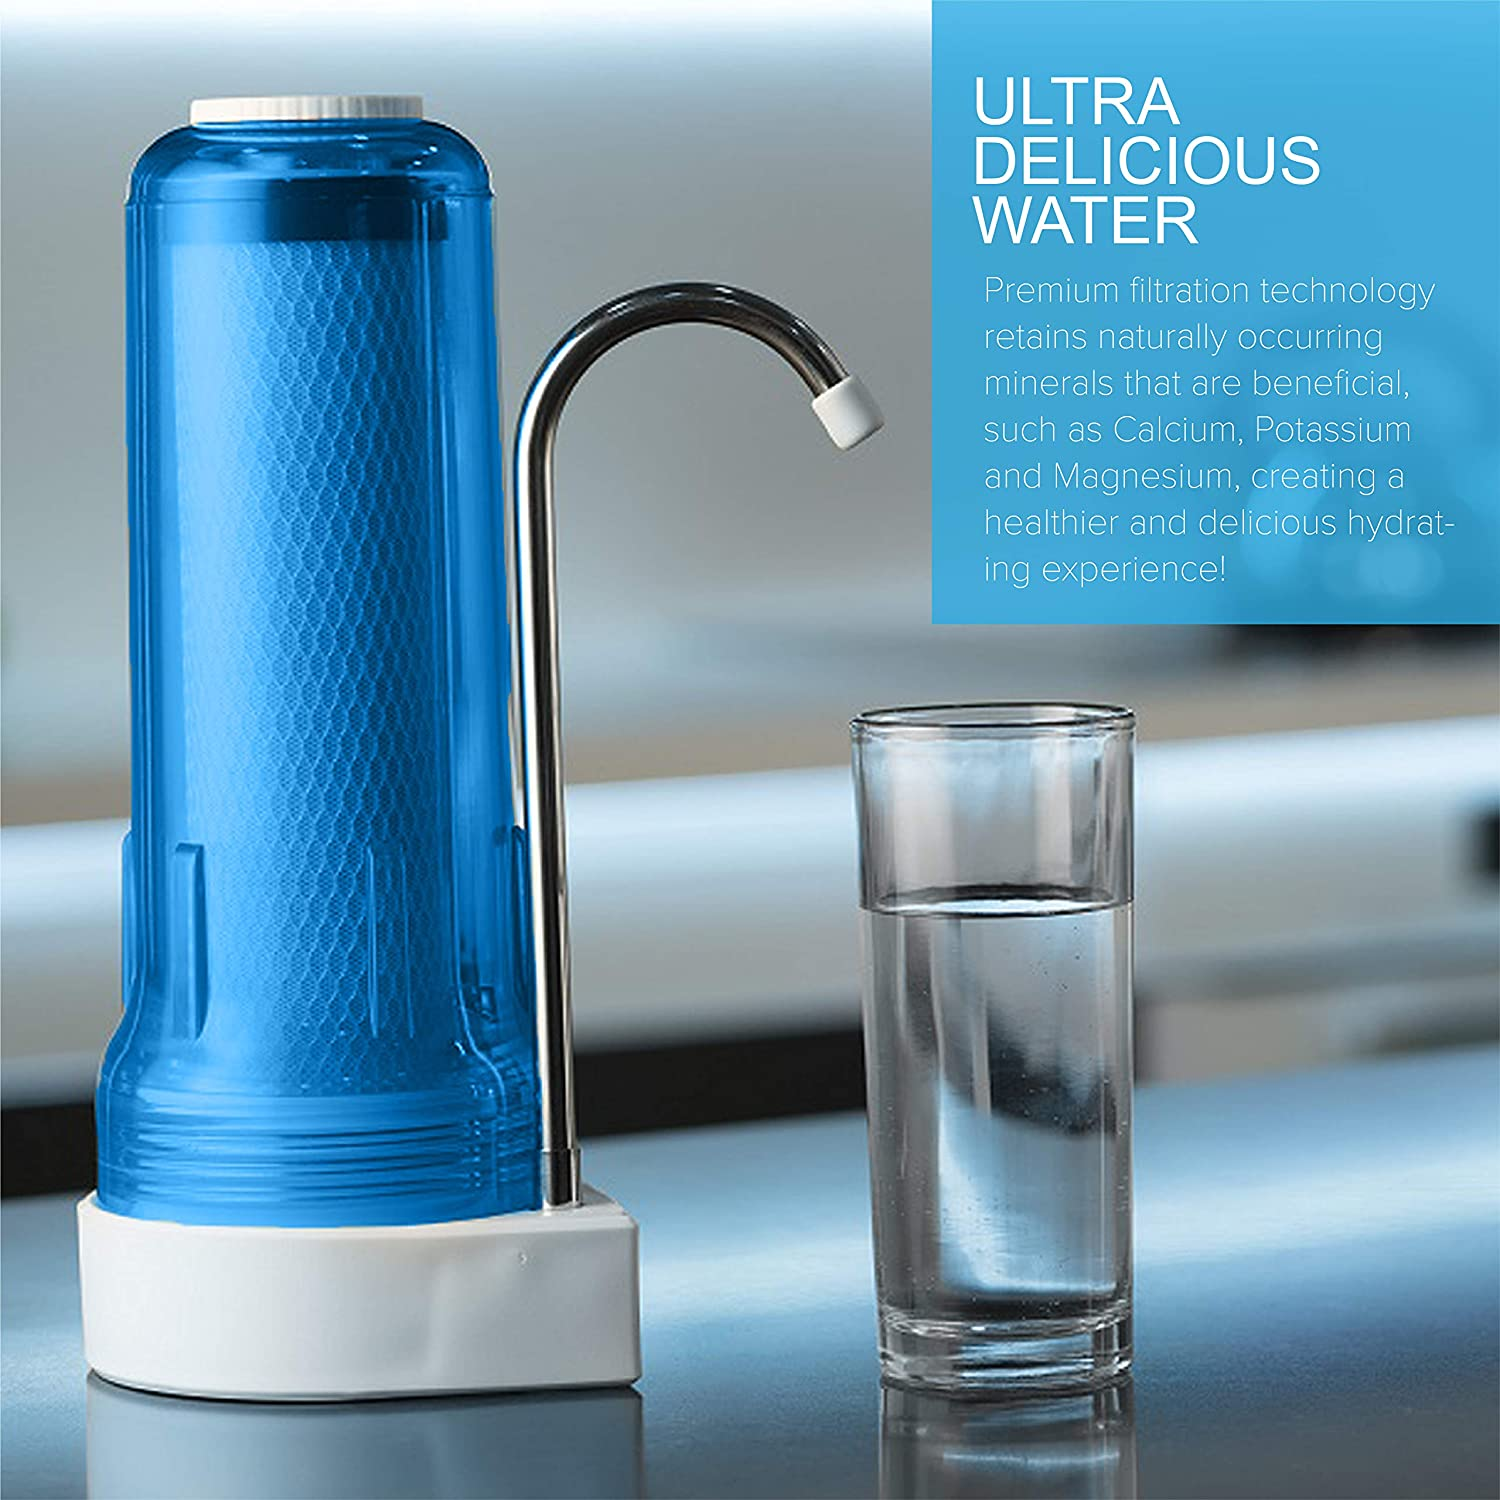 Ecosoft FMV1BOBWEXP Countertop Water Filter provides ultra delicious water